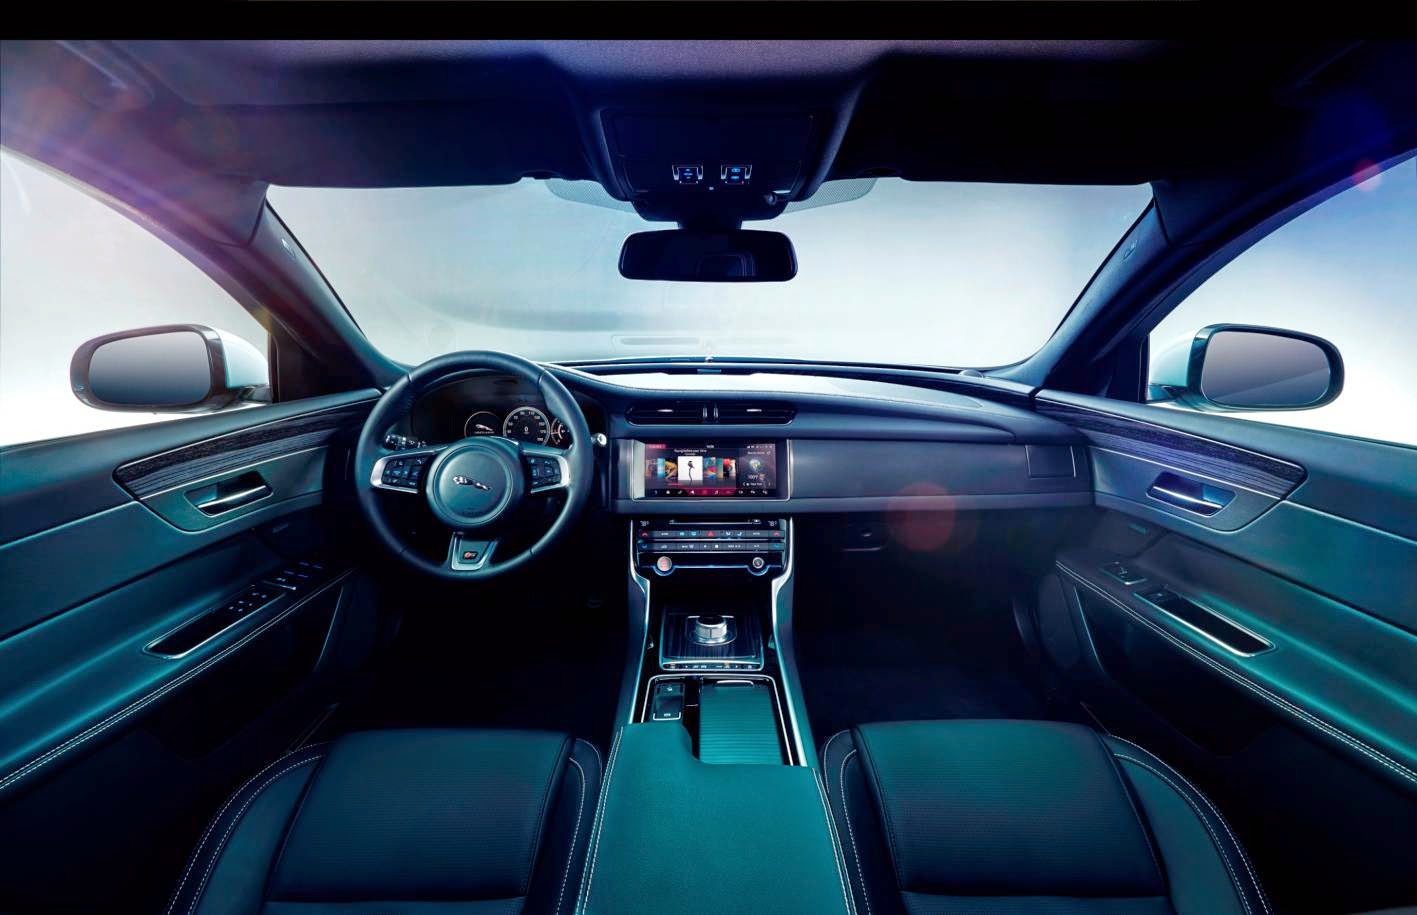 New Jaguar XF interior